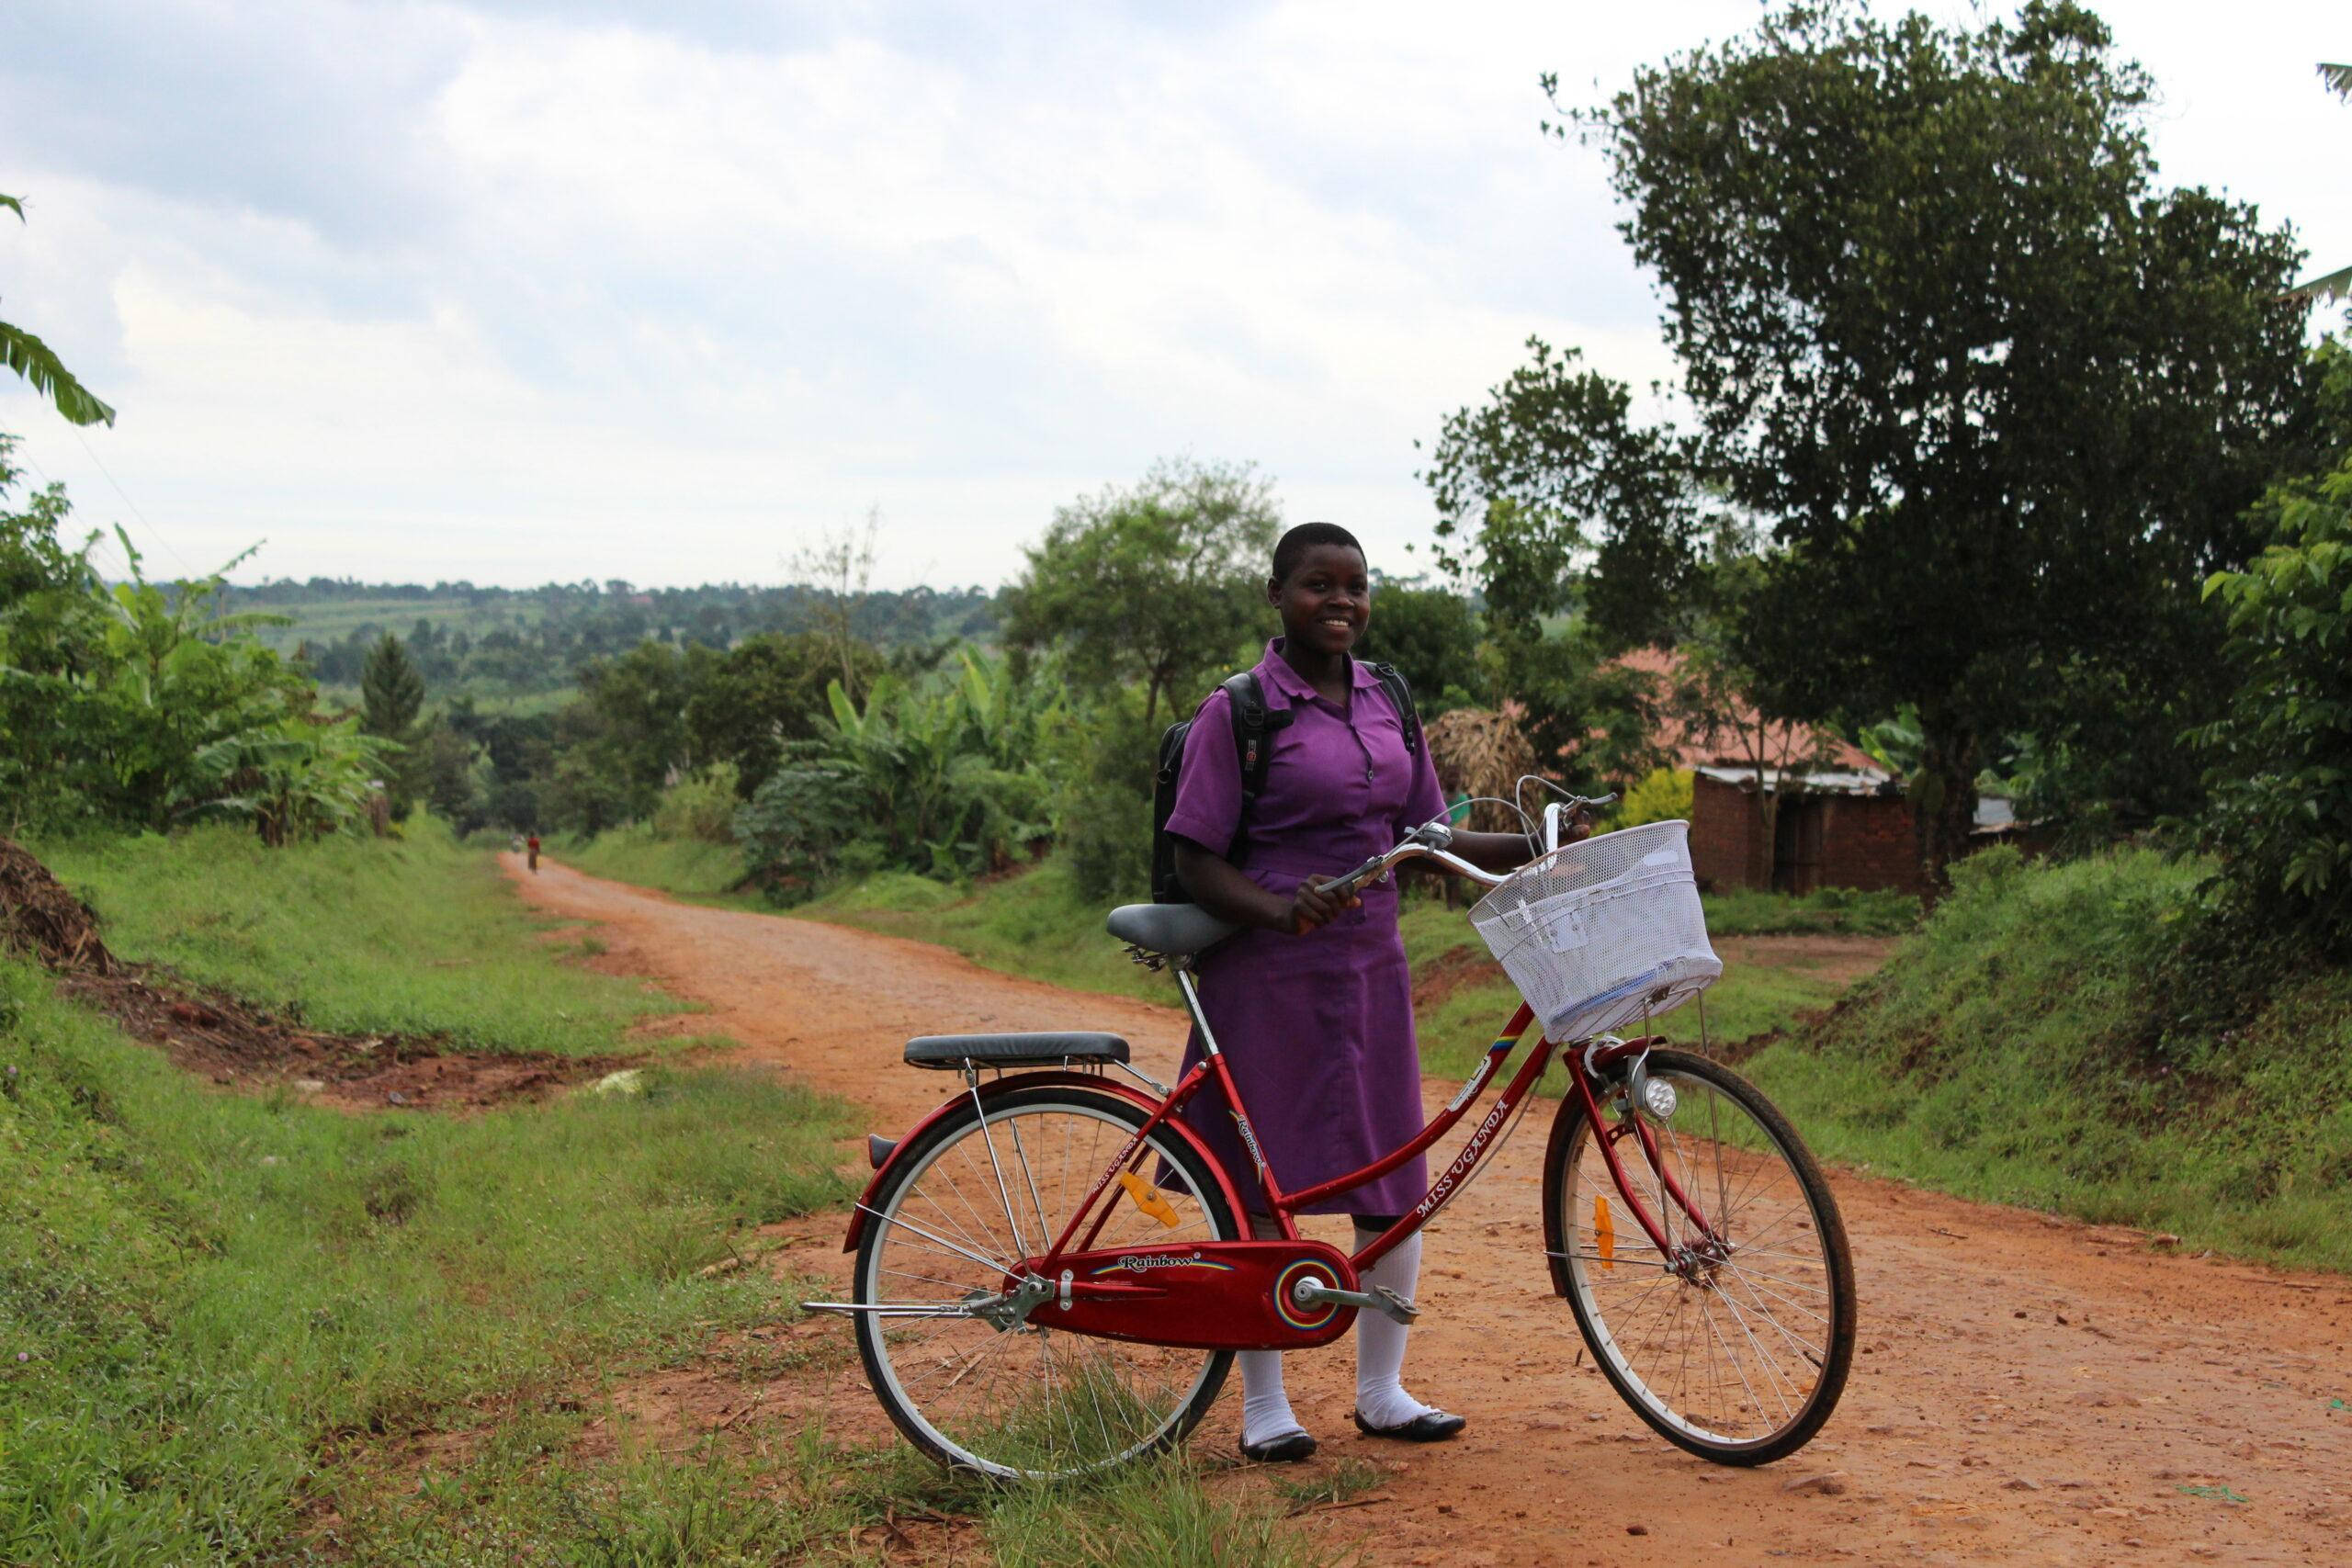 Nawalat with her bicycle in Uganda